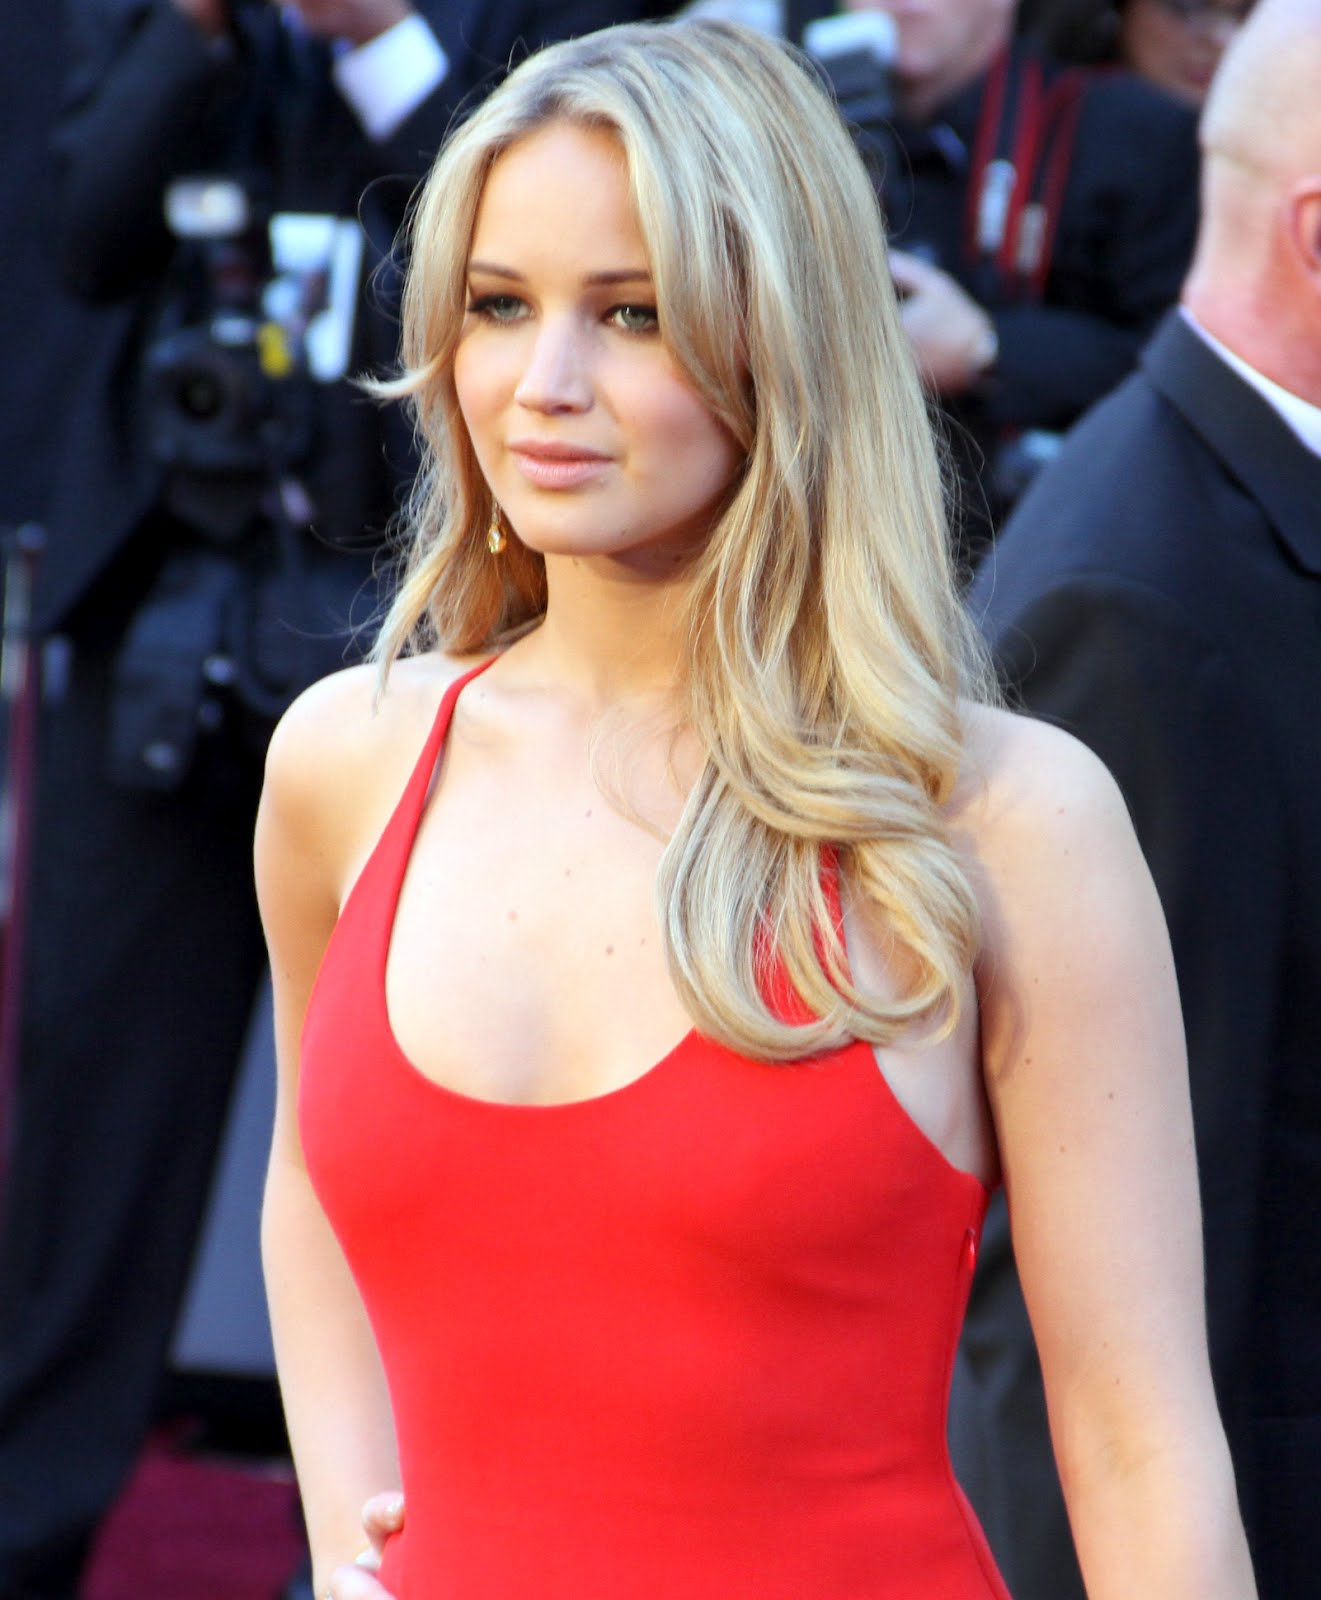 http://2.bp.blogspot.com/-9uH3J79LVO0/T-8BOPgEkBI/AAAAAAAAAFI/5FFWDgpuI5I/s1600/Jennifer_Lawrence_at_the_83rd_Academy_Awards_crop.jpg